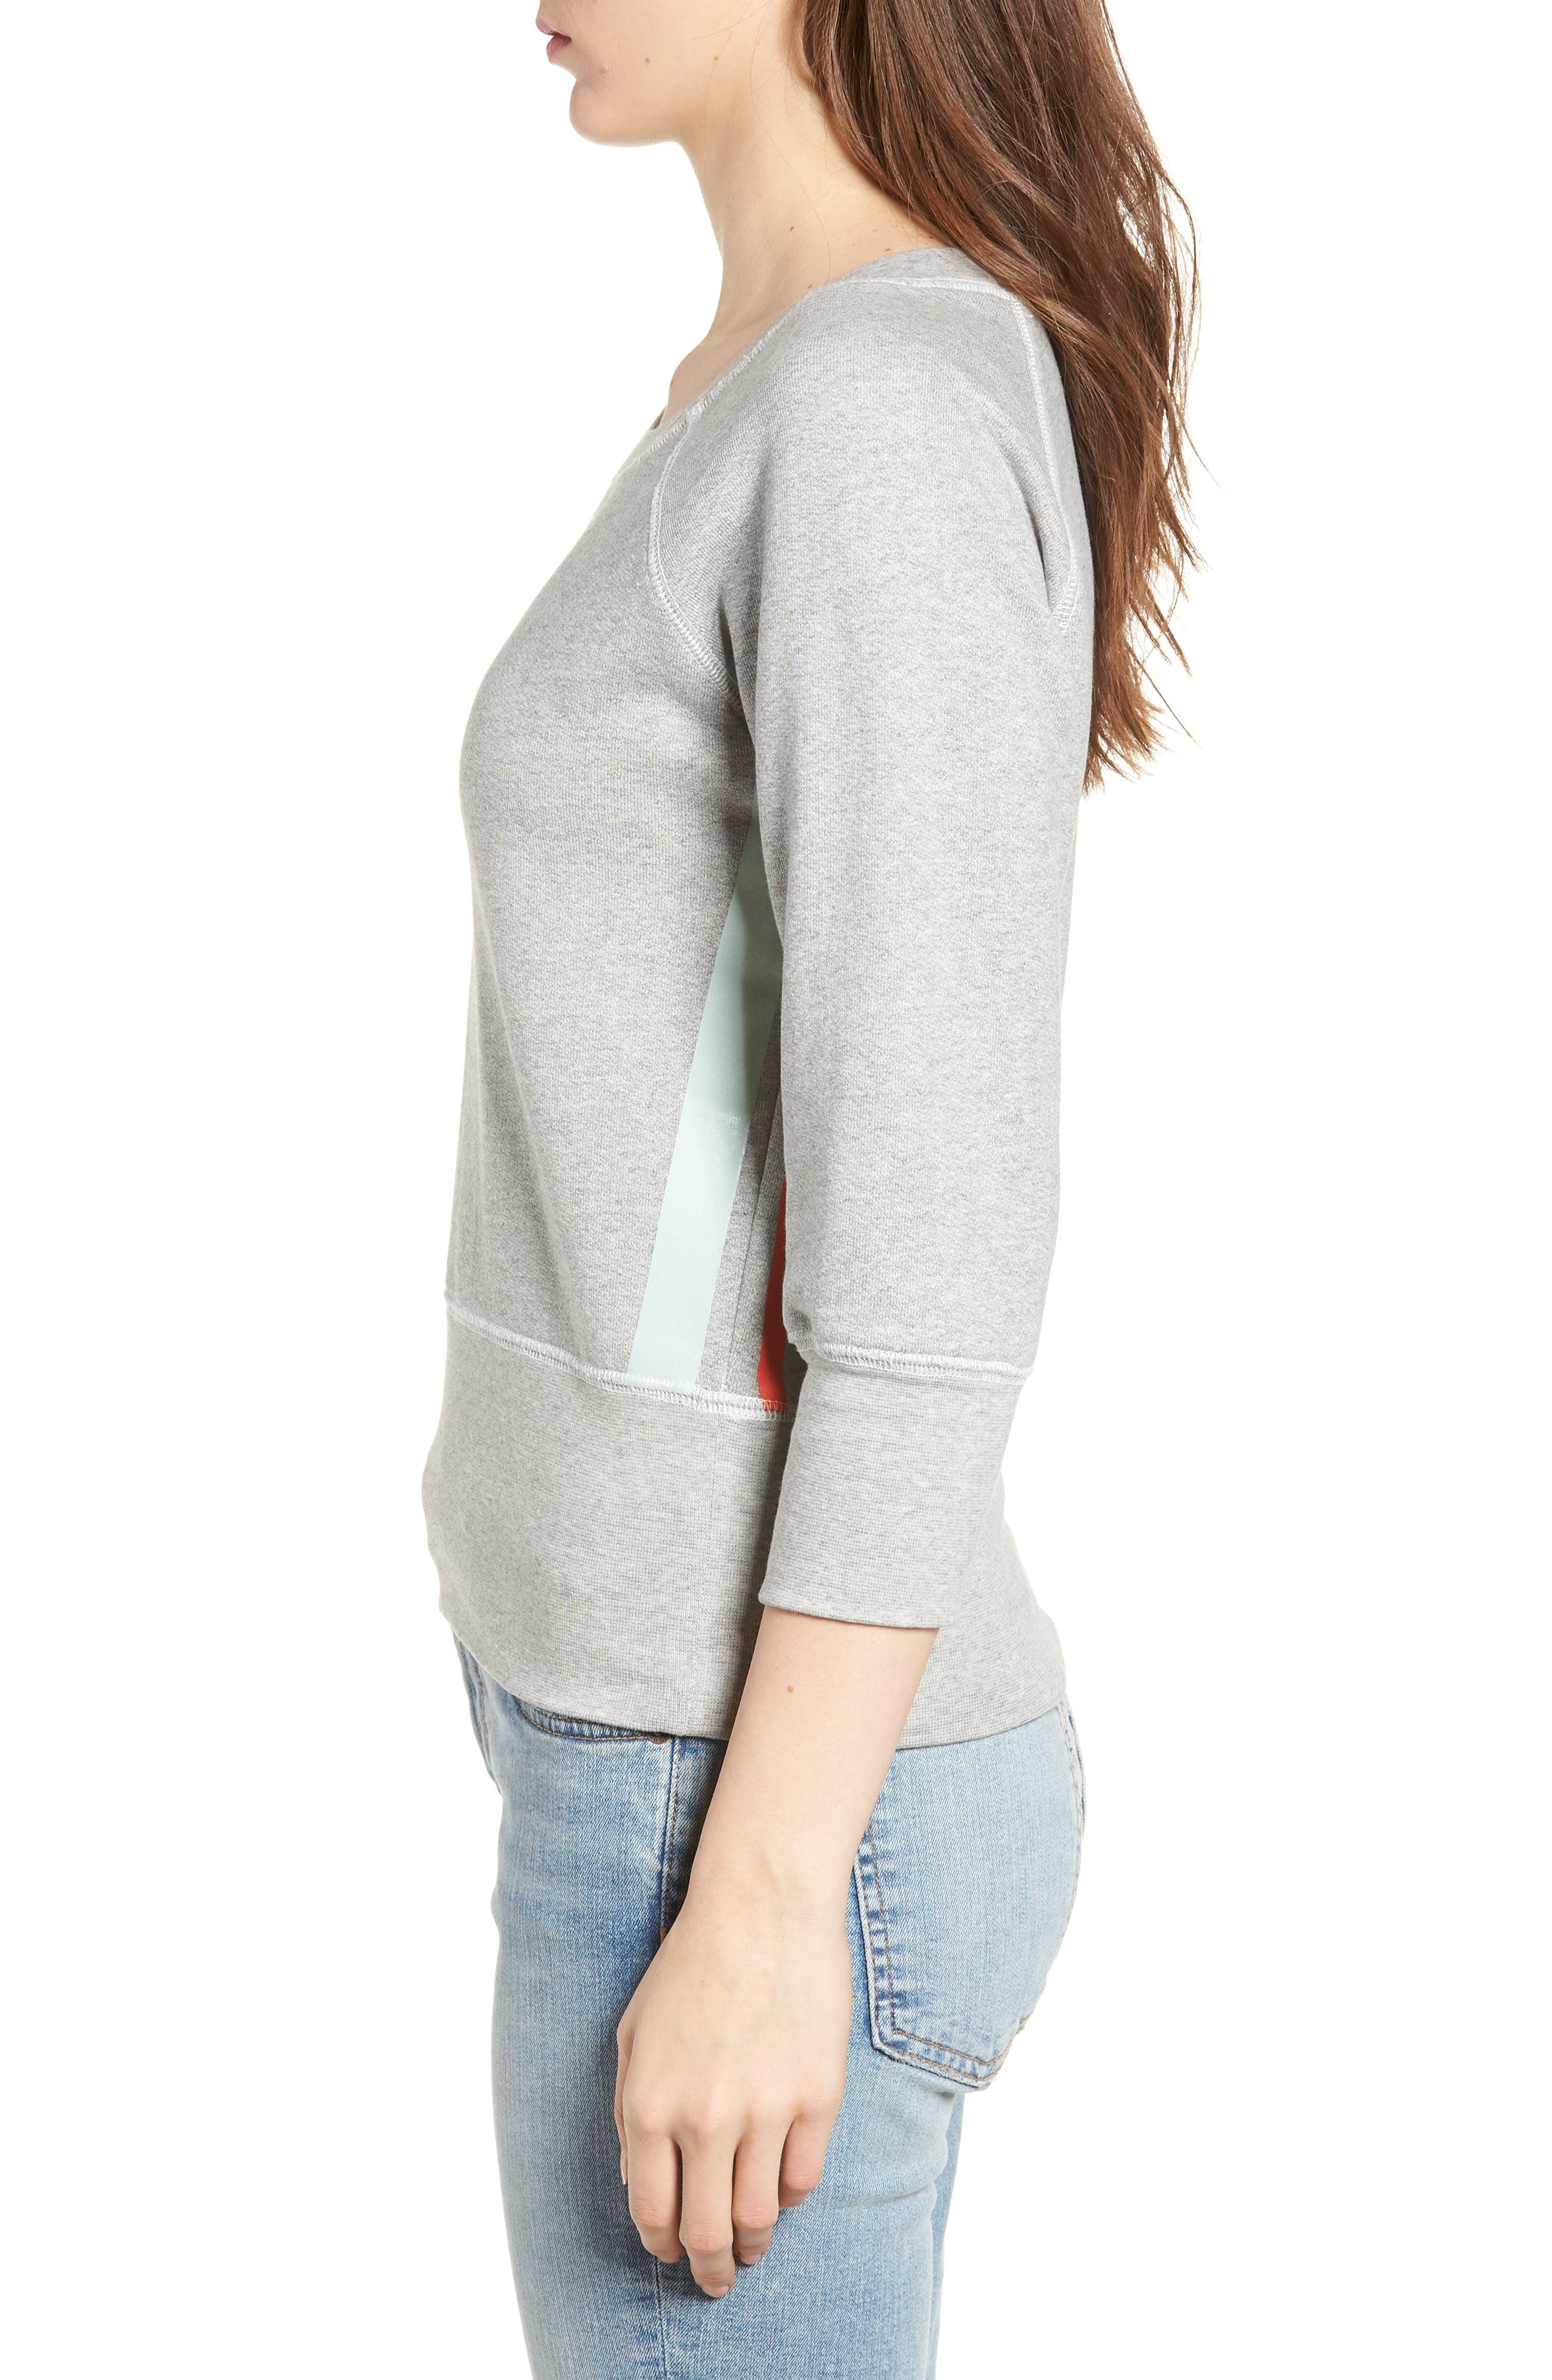 The Dallas Sweatshirt,                             Alternate thumbnail 3, color,                             Heather Grey Fleece